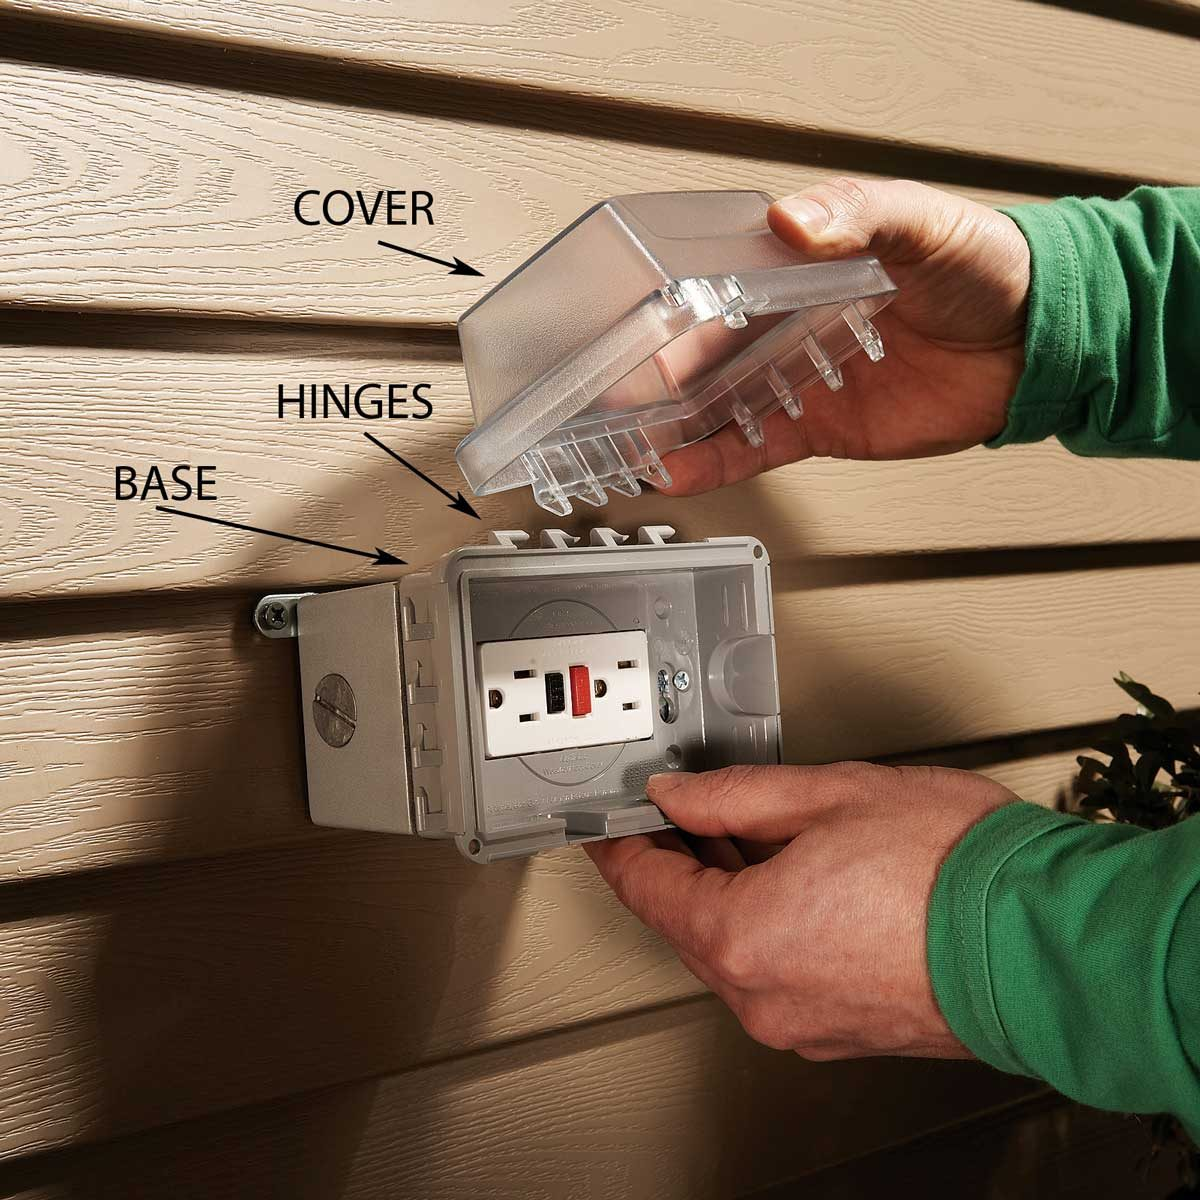 Mount the Weatherproof Electrical Outlet Box Cover